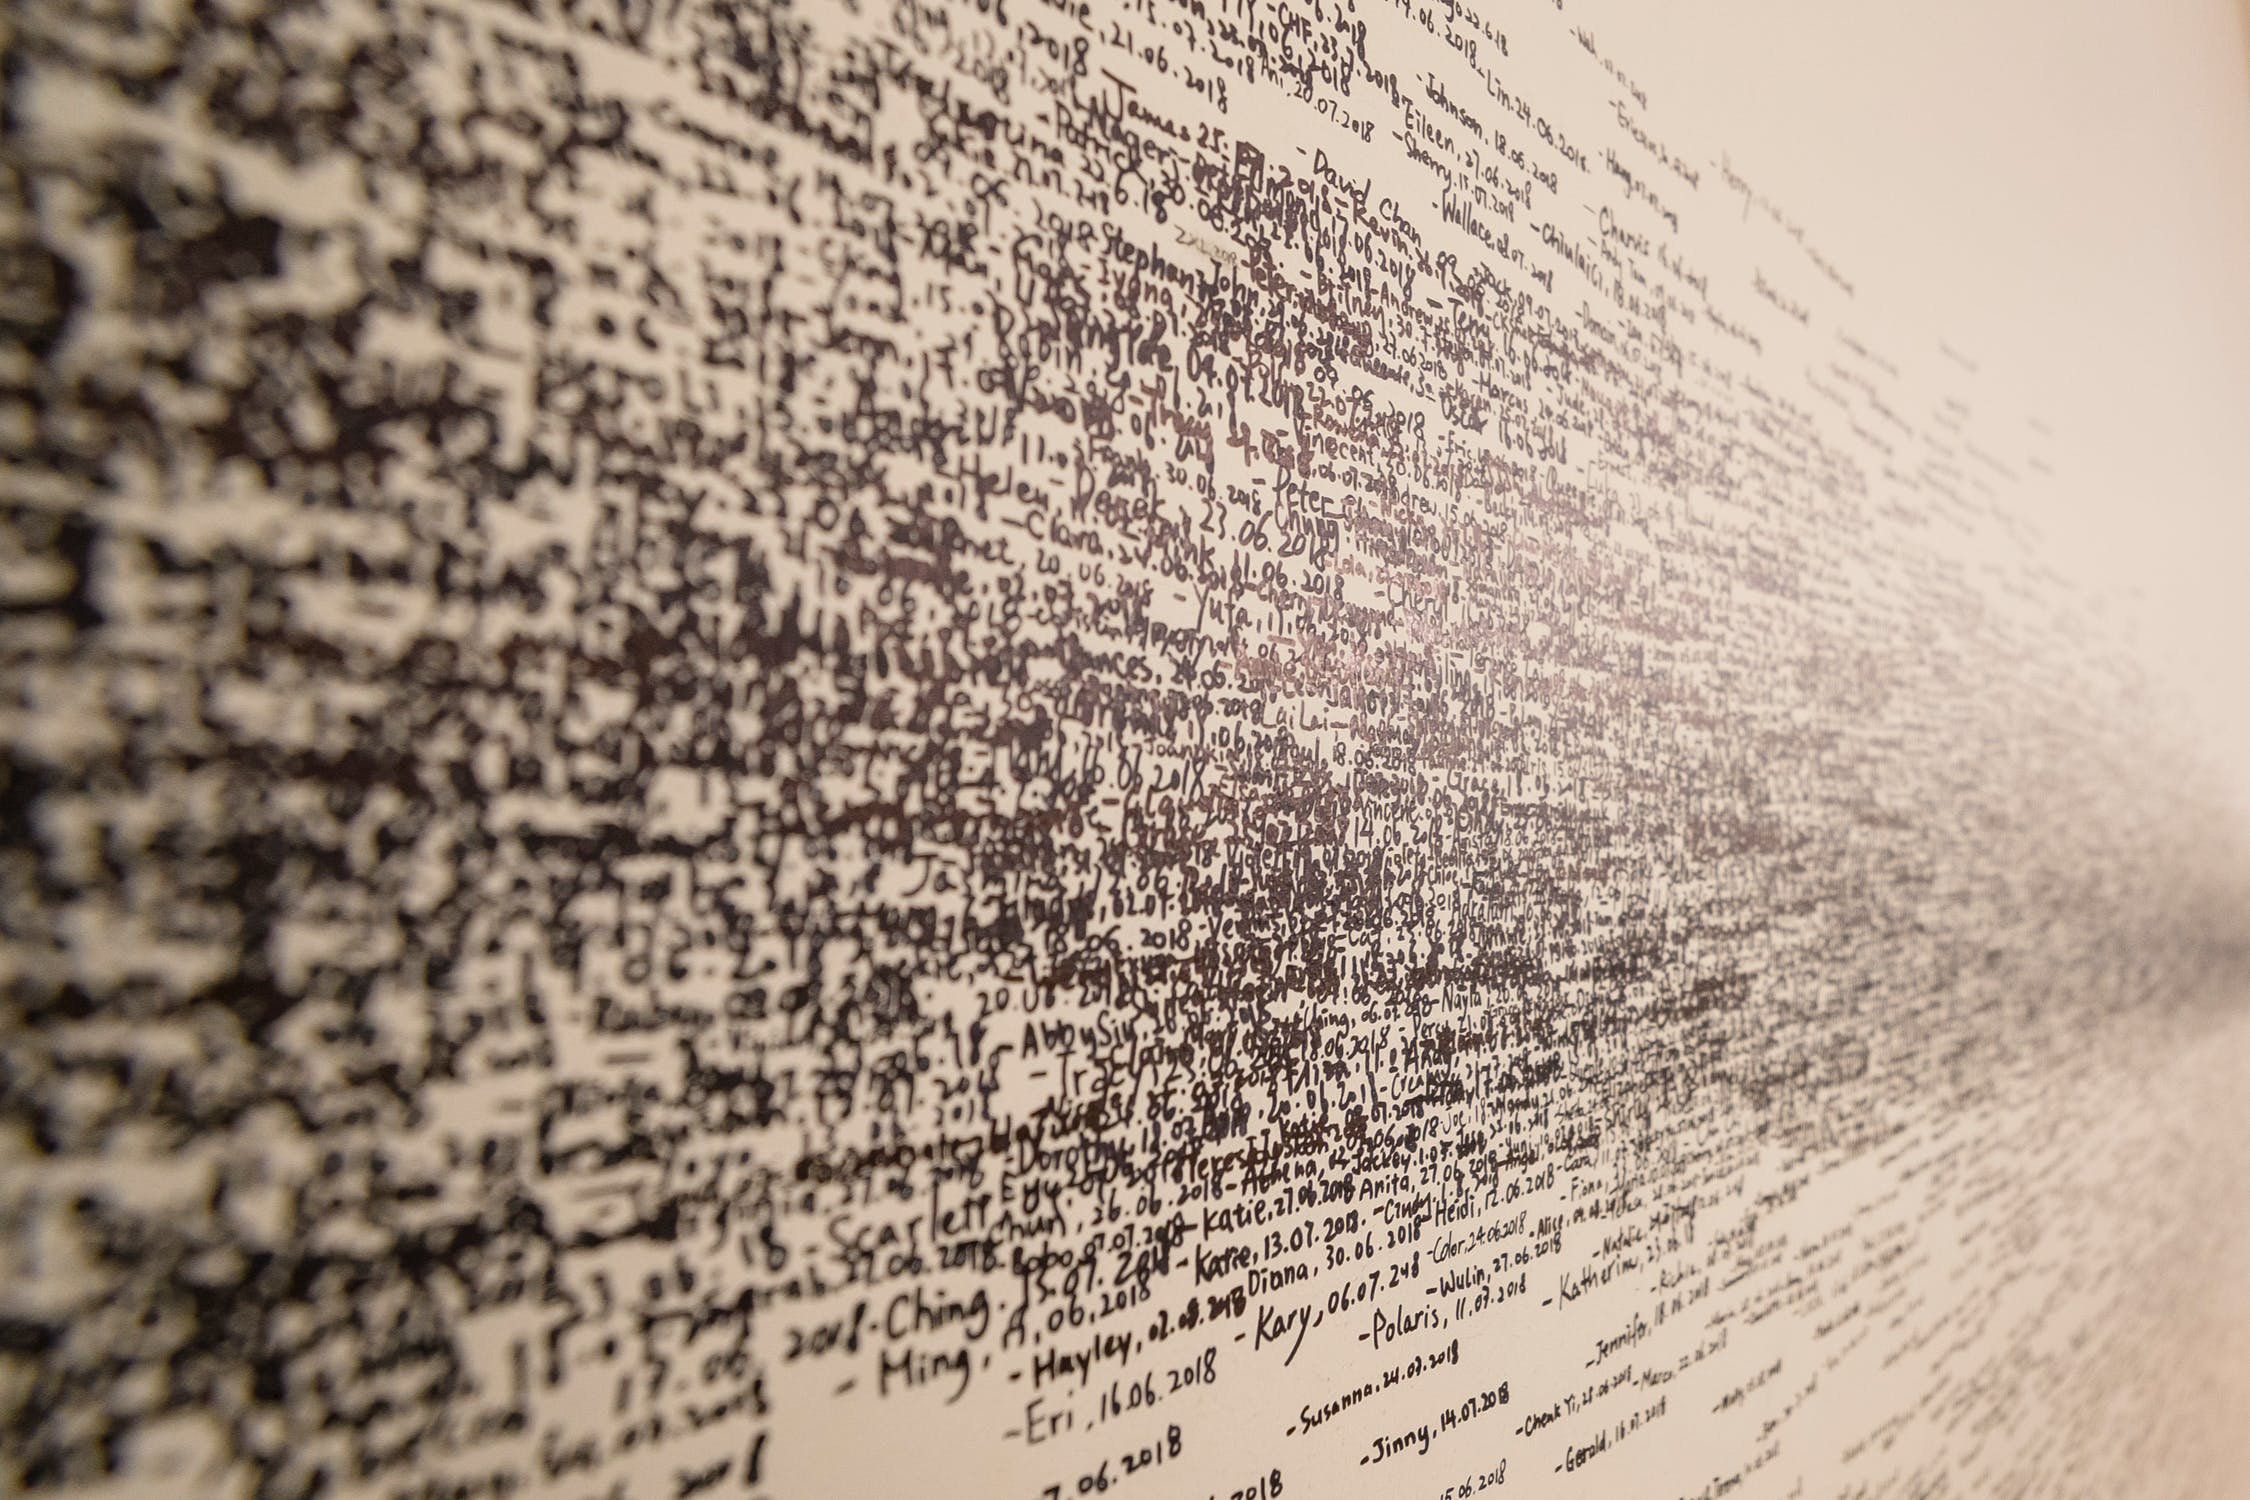 Image of complicated jumble of words written on a wall, depicting the challenge facing Natural Language Processing algorithms.